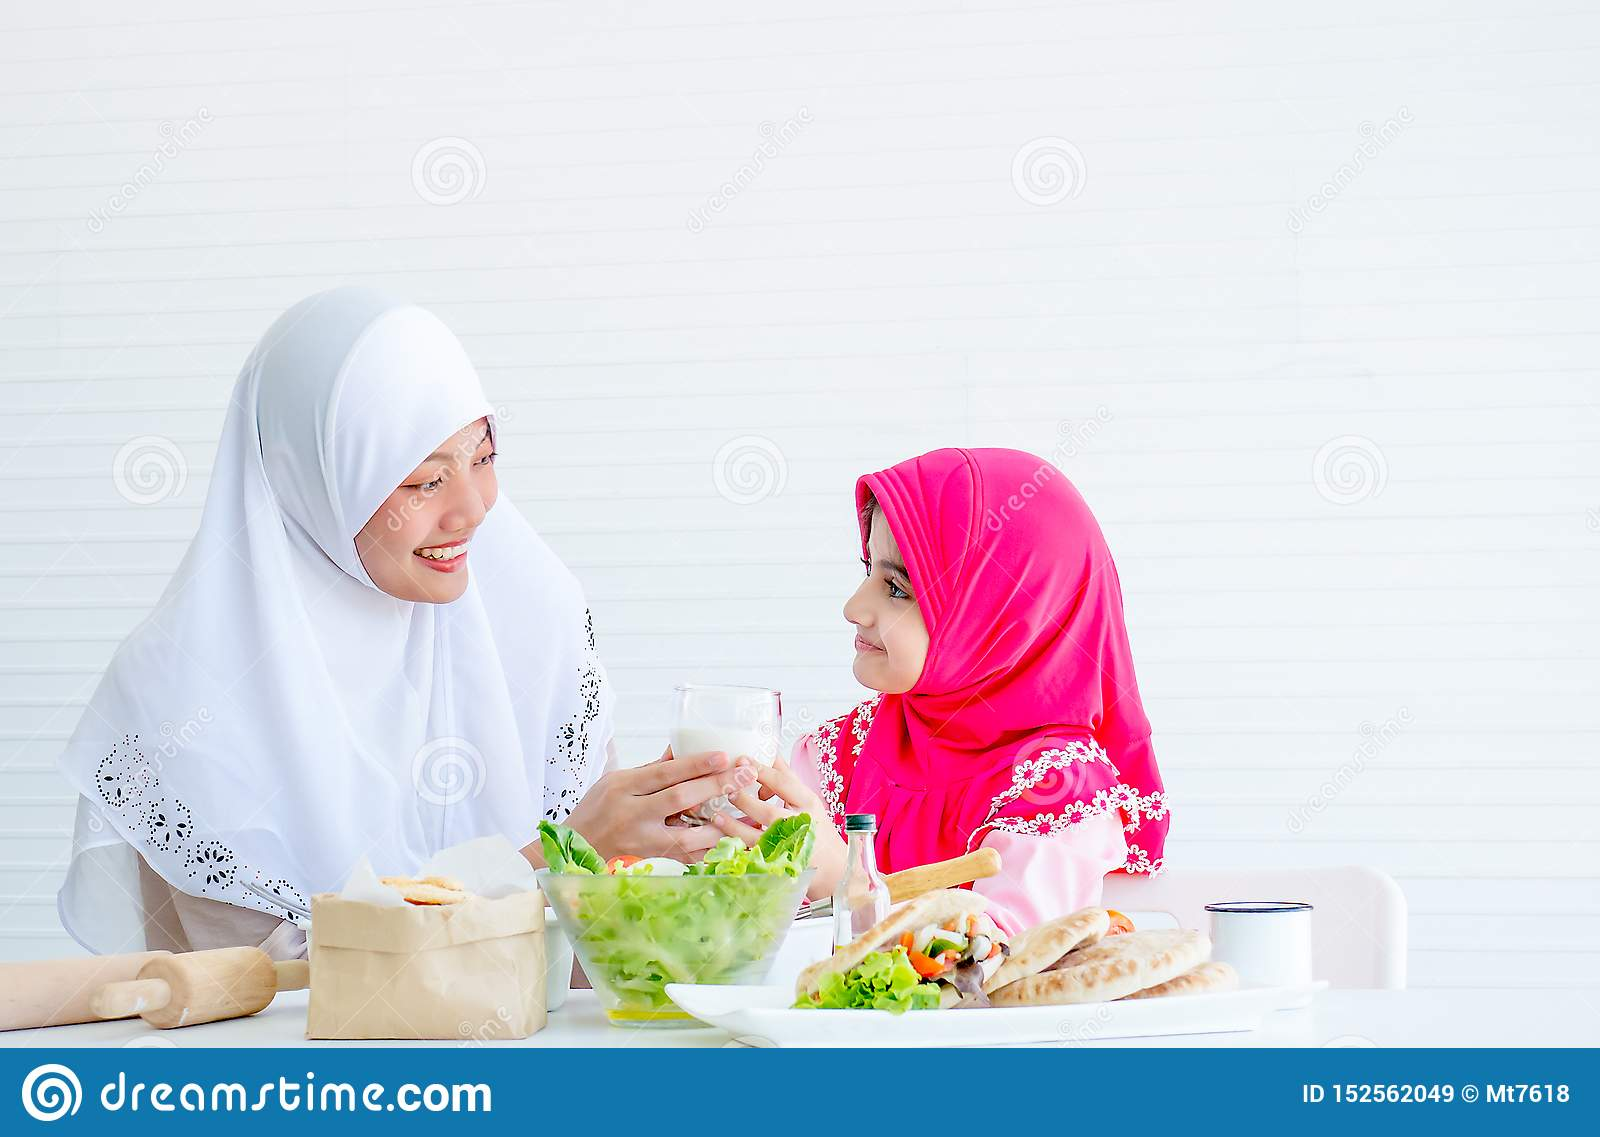 Muslim mother serve glass of milk to her little girl and also look to each other with smiling, bowl of vegetable salad on the